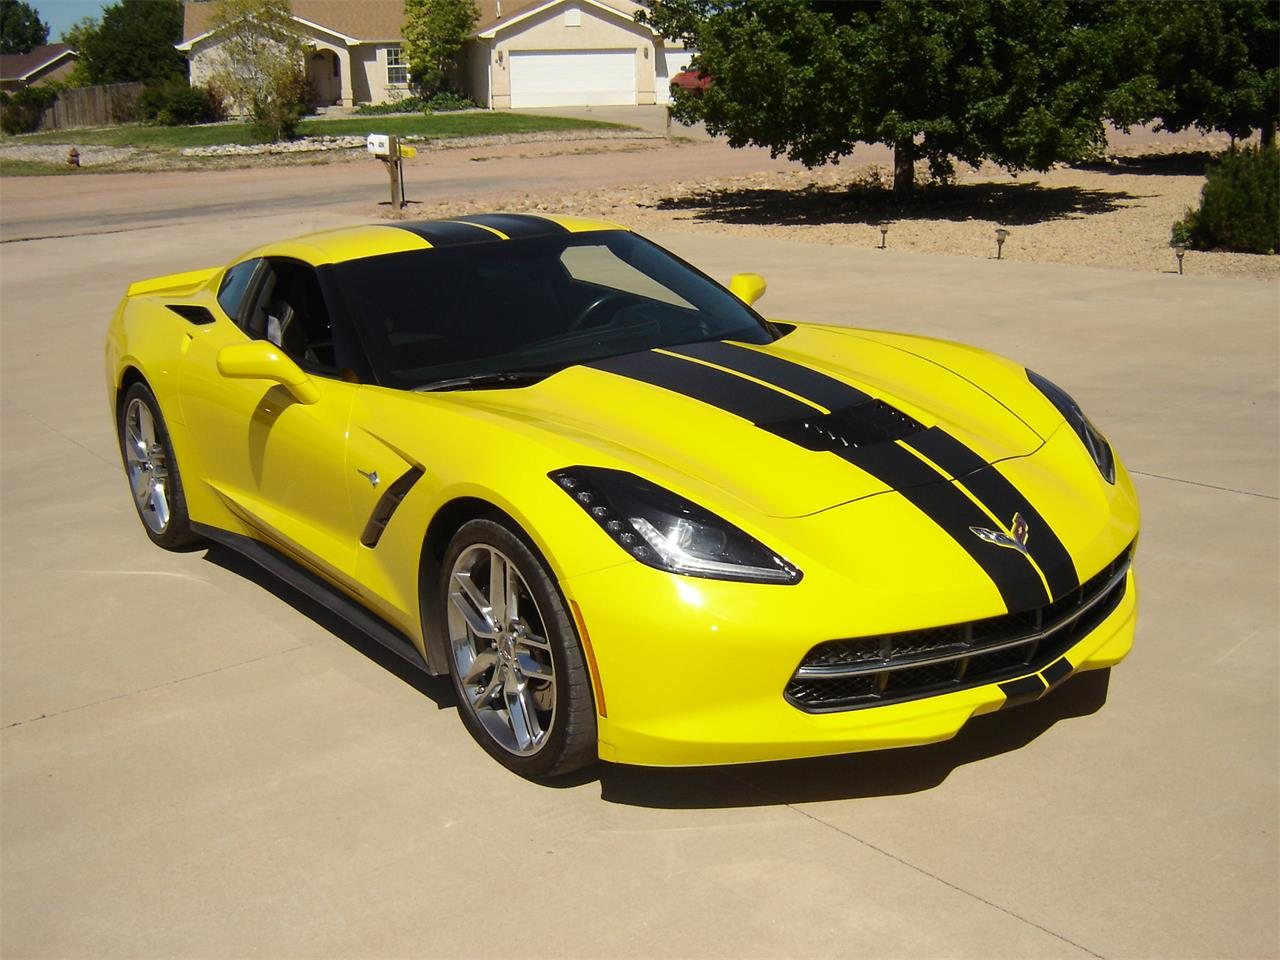 2015 Chevrolet Corvette (CC-1299265) for sale in Pueblo West, Colorado